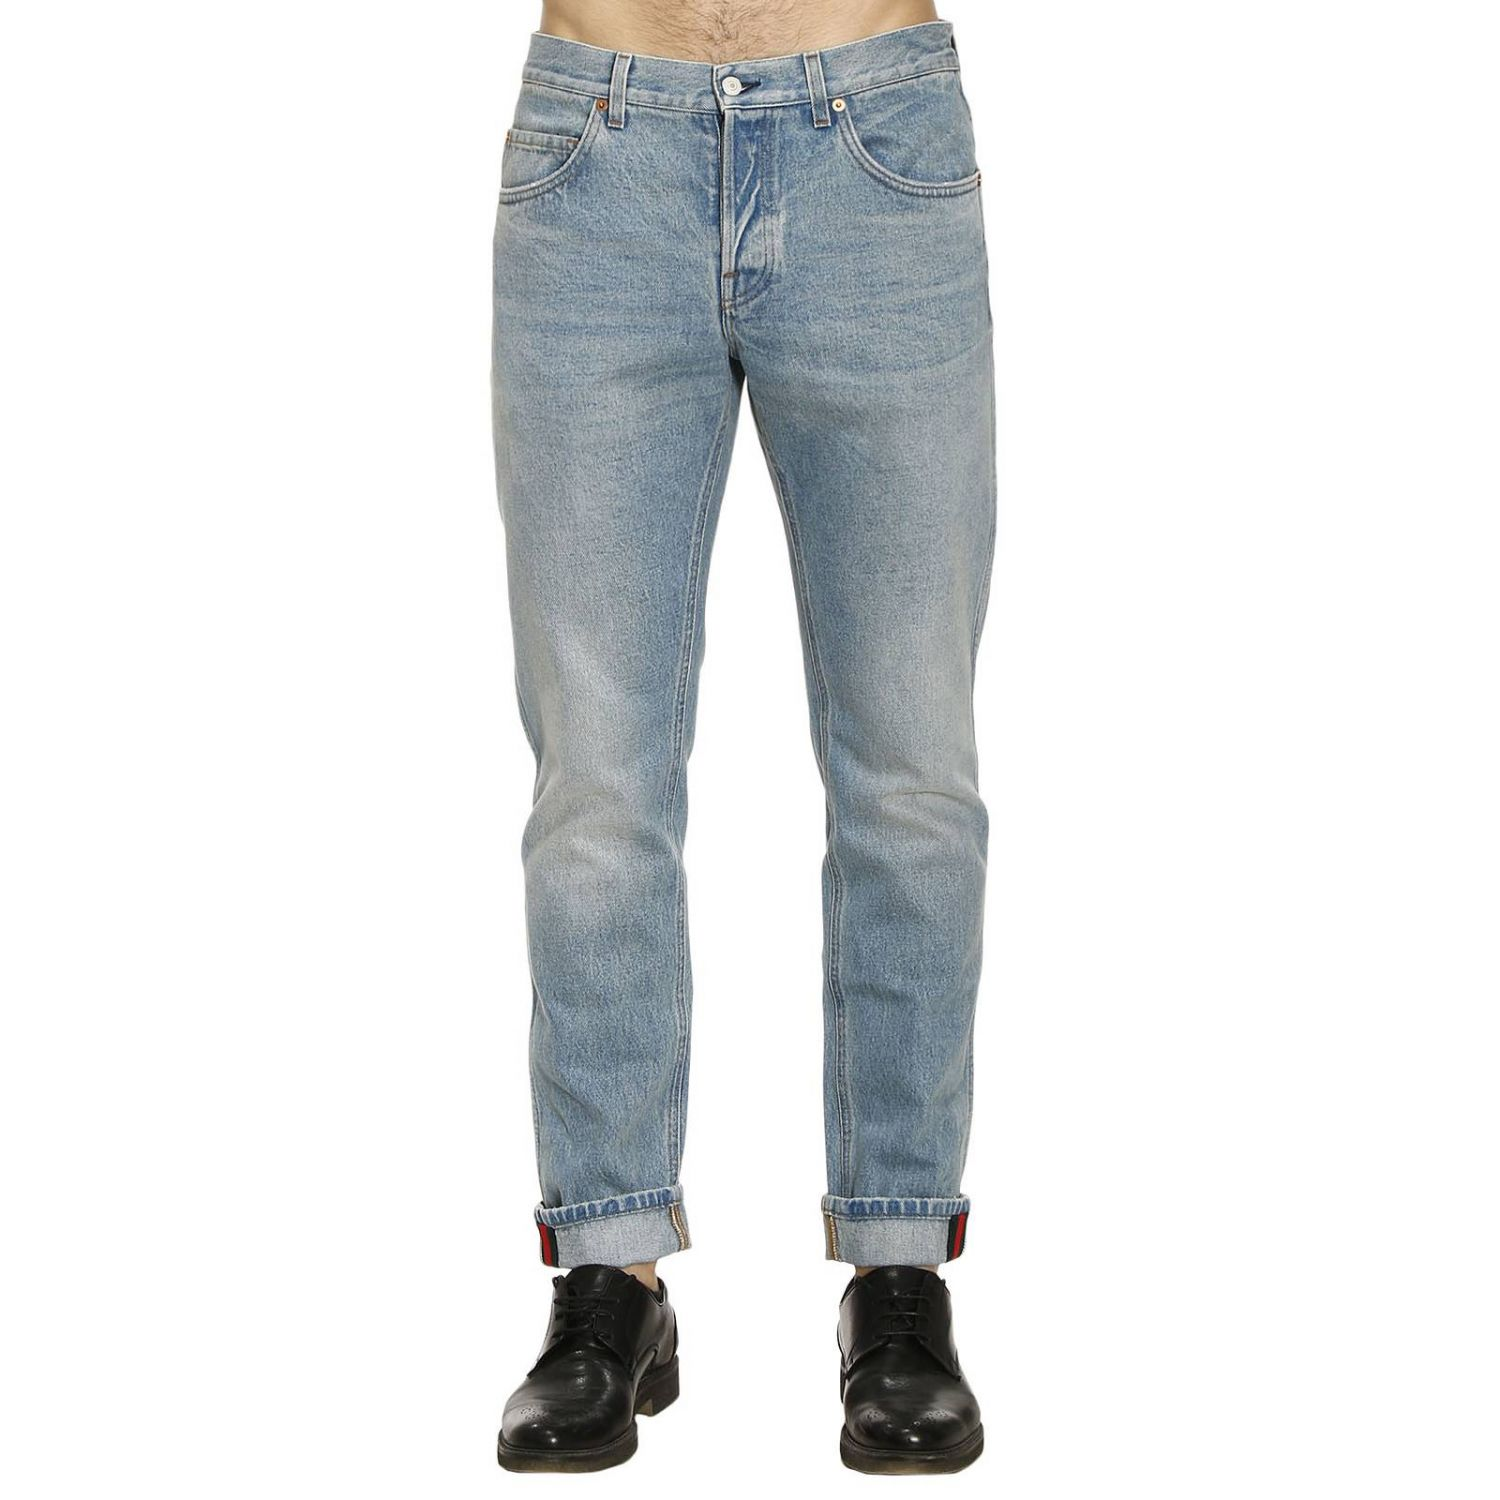 Jeans Tapered Carrot Jeans Fit With Used Effect 8231355